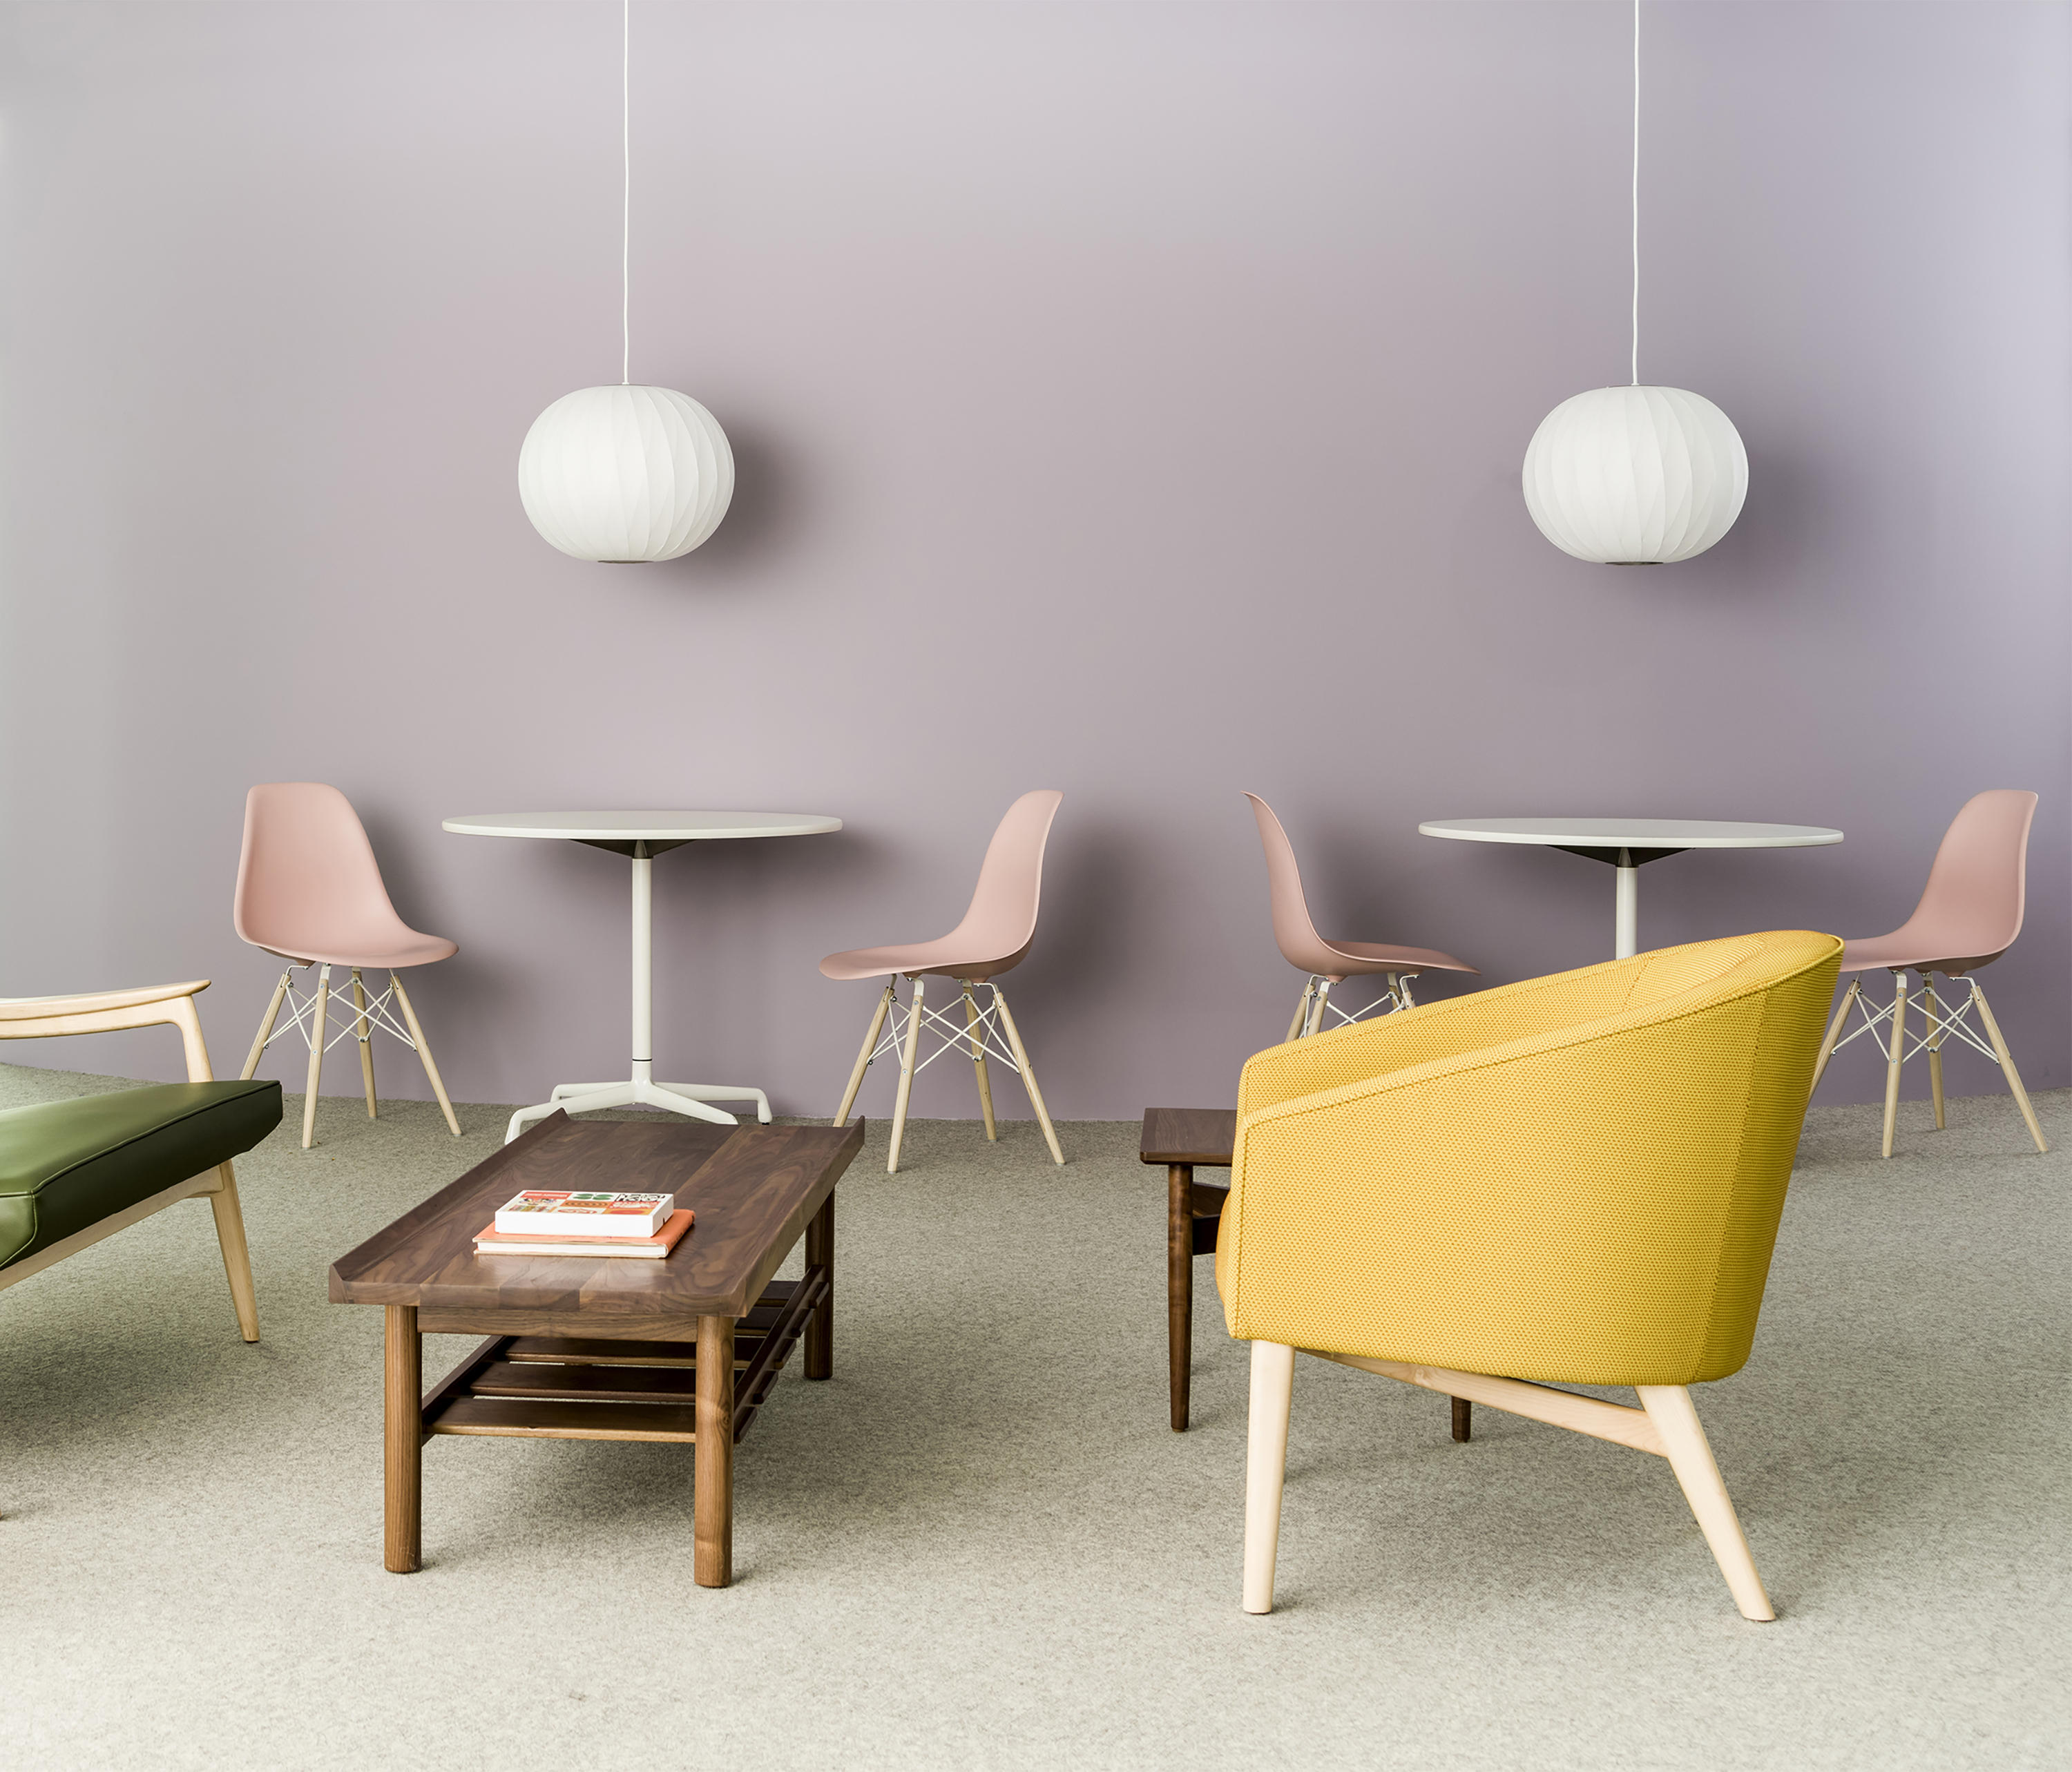 eames molded side chair oversized slipcover plastic chairs from herman miller architonic by